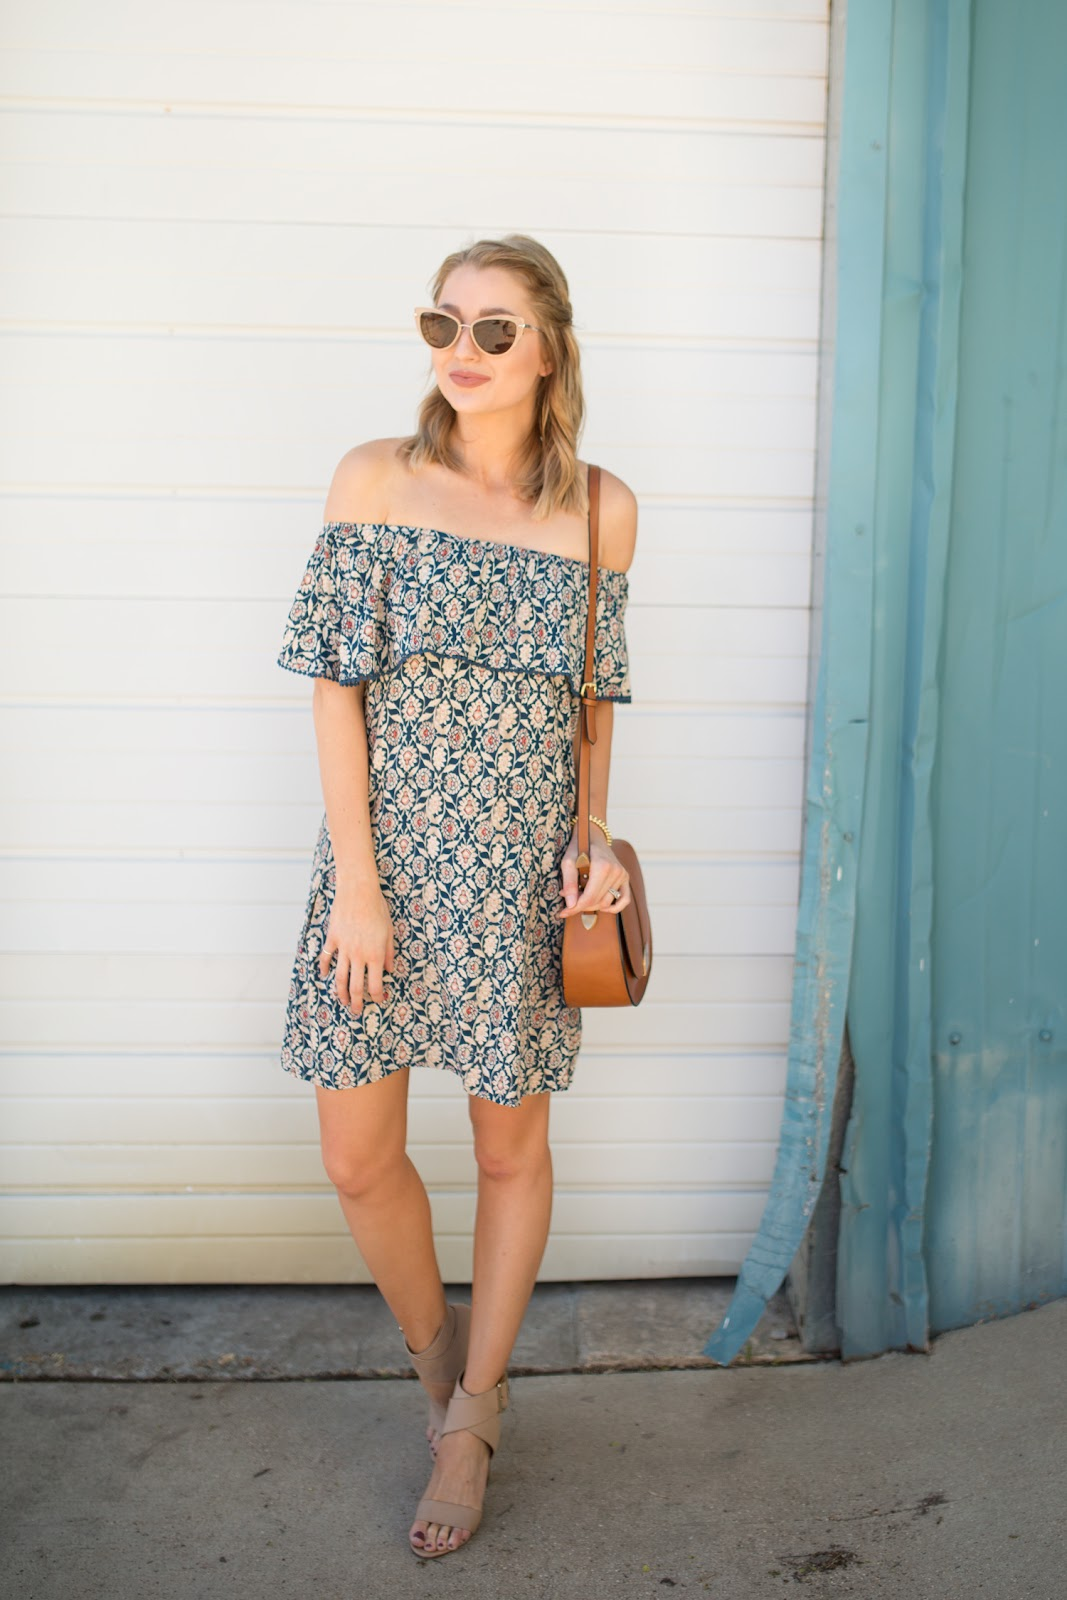 Summer off-the-shoulder dress